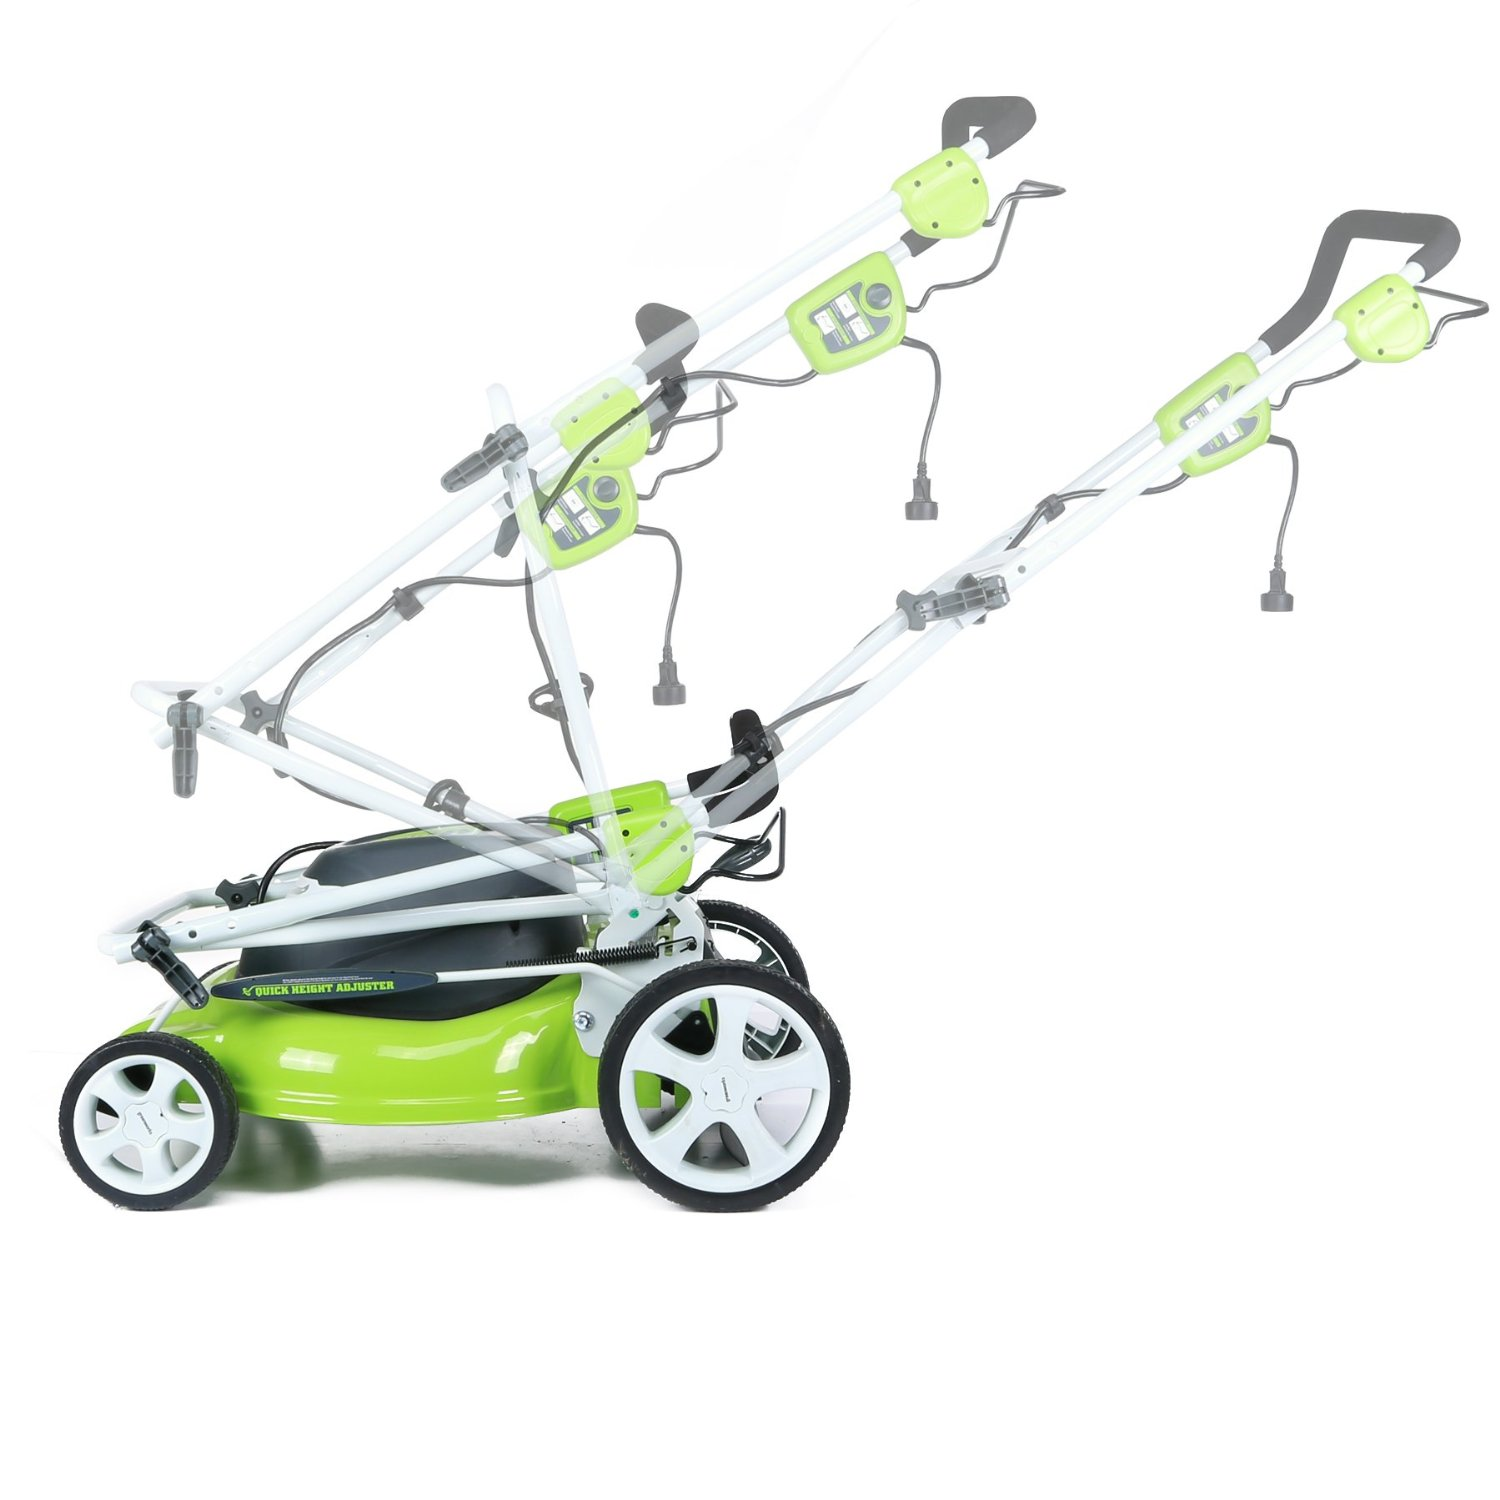 Greenworks 25022 12 Amp 20 3In1 Electric Lawn Mower Review